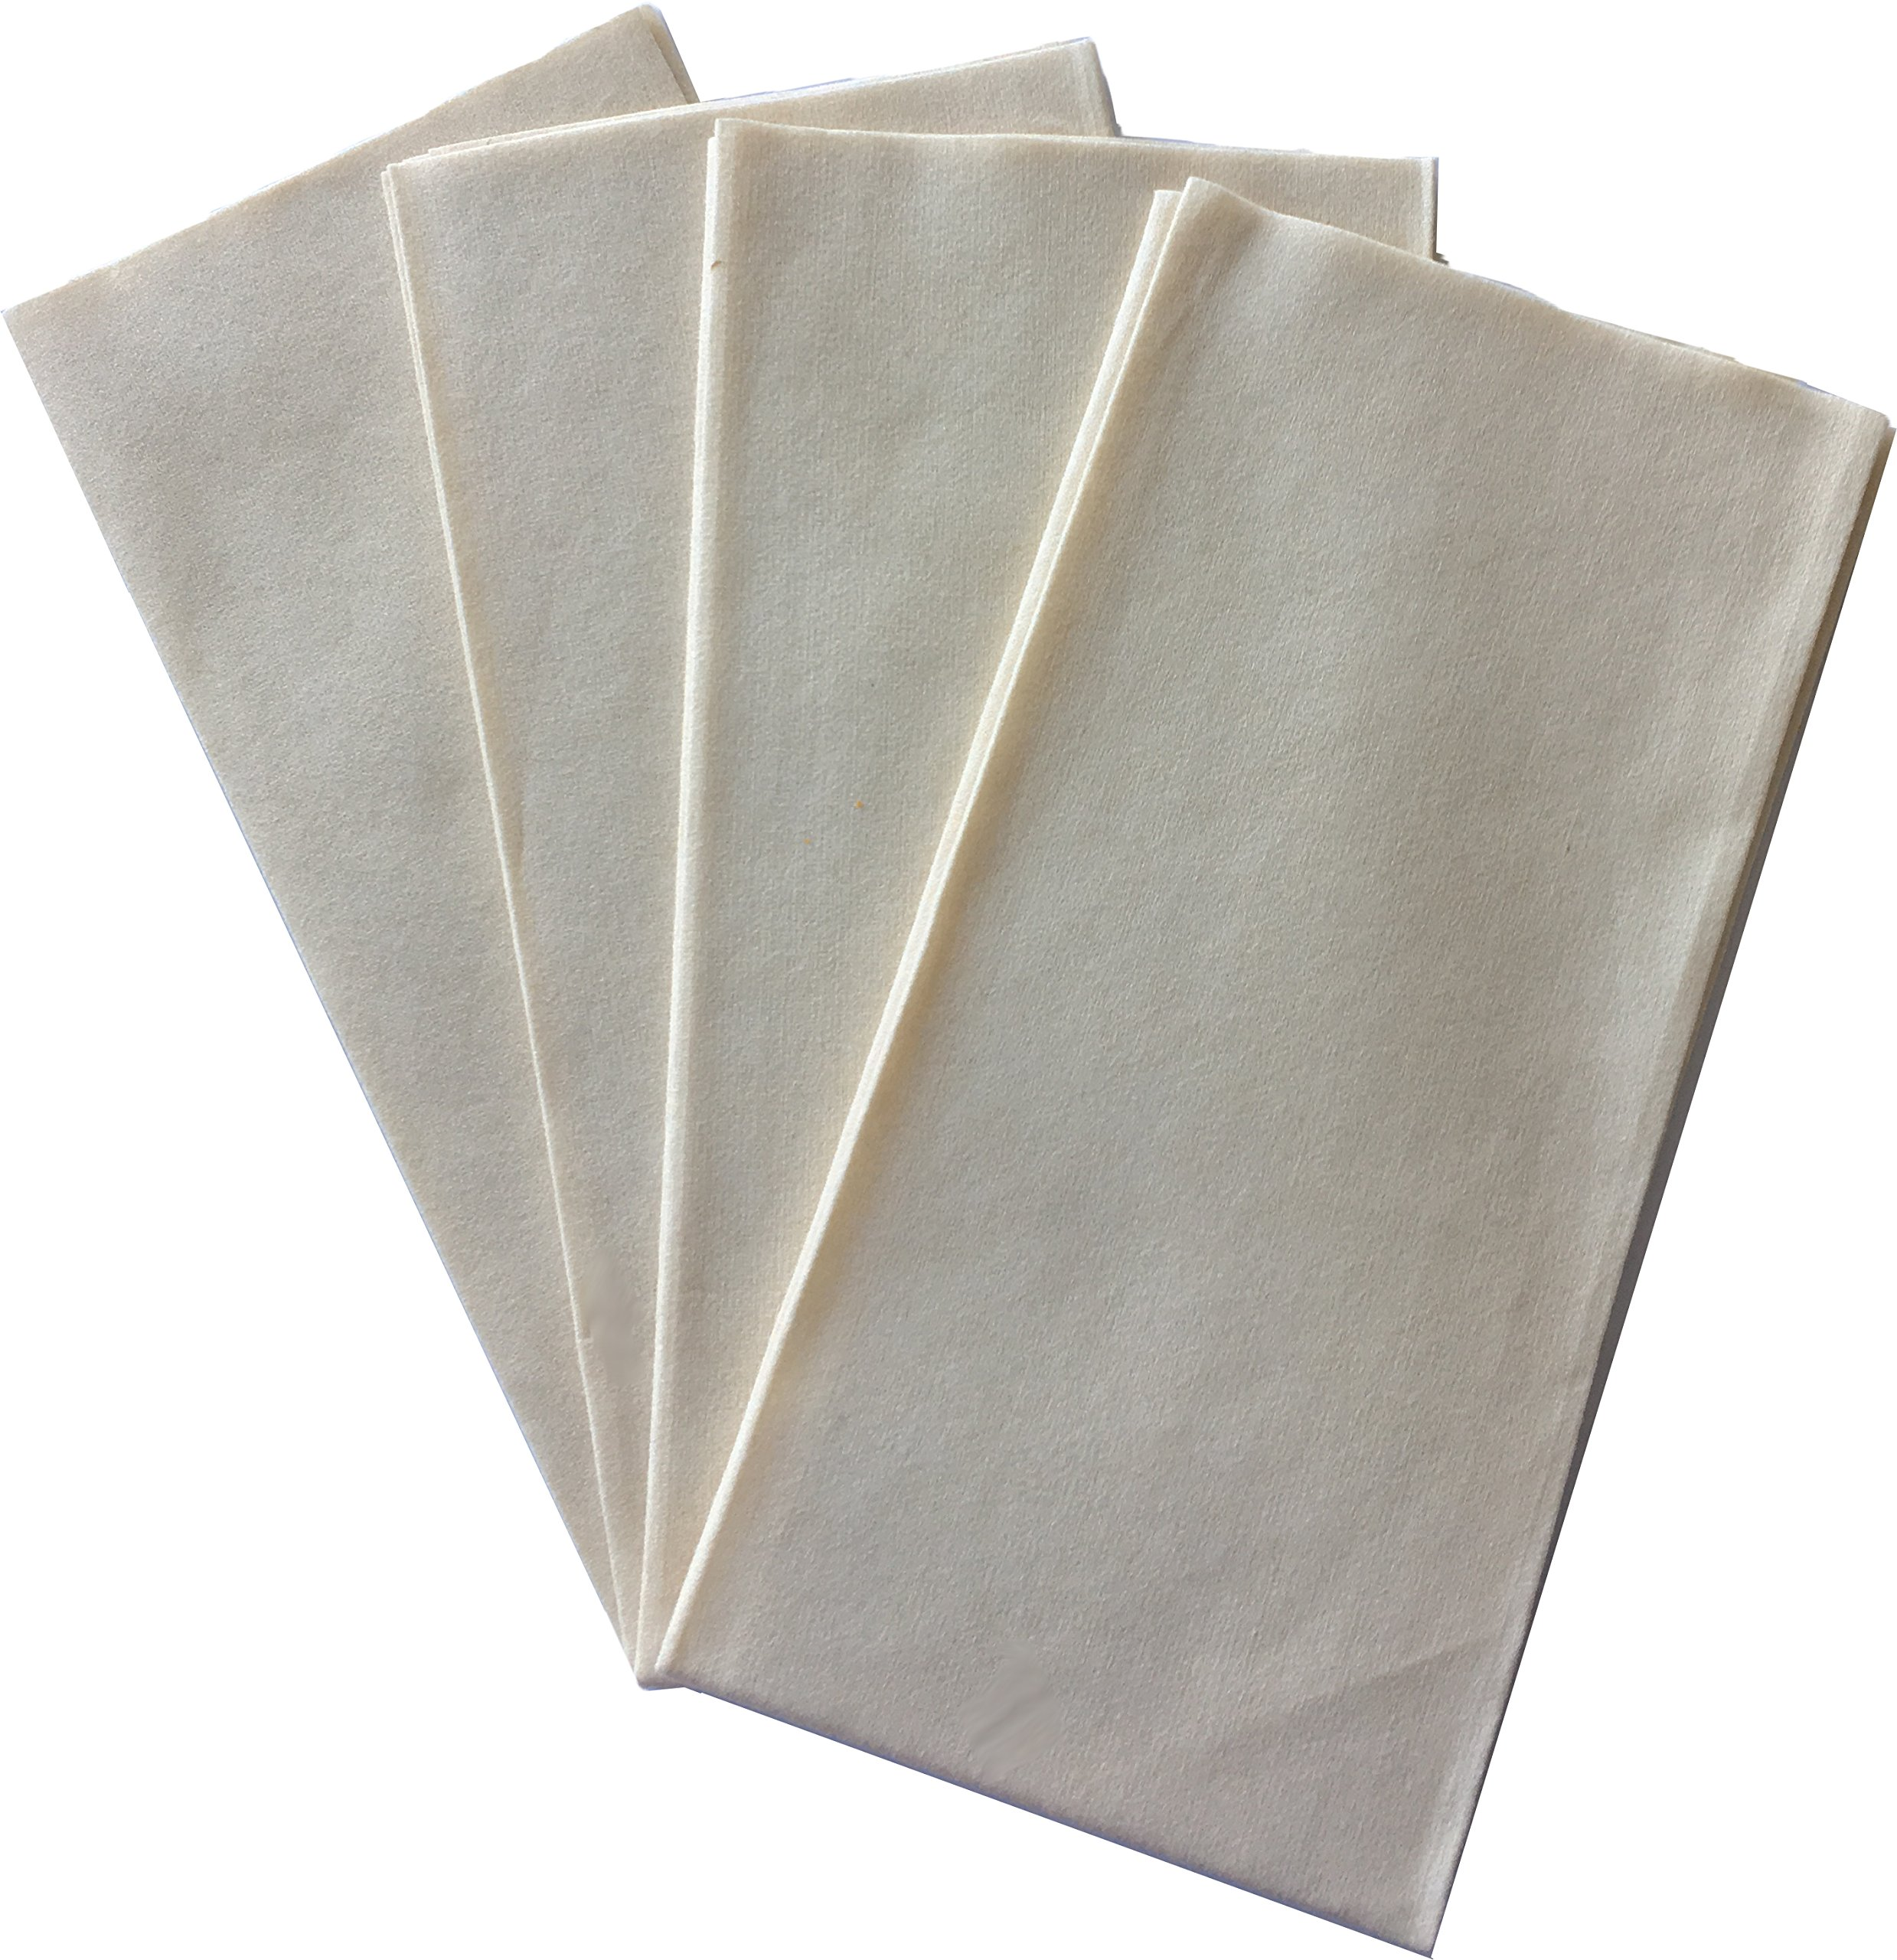 Fortune 100% Bamboo Linen-Feel Disposable Guest Napkins Eco and Environment Friendly - 100 Pack Natural Fibers Perfect For Upscale Parties and Entertaining - 1/6 Fold - 17x12